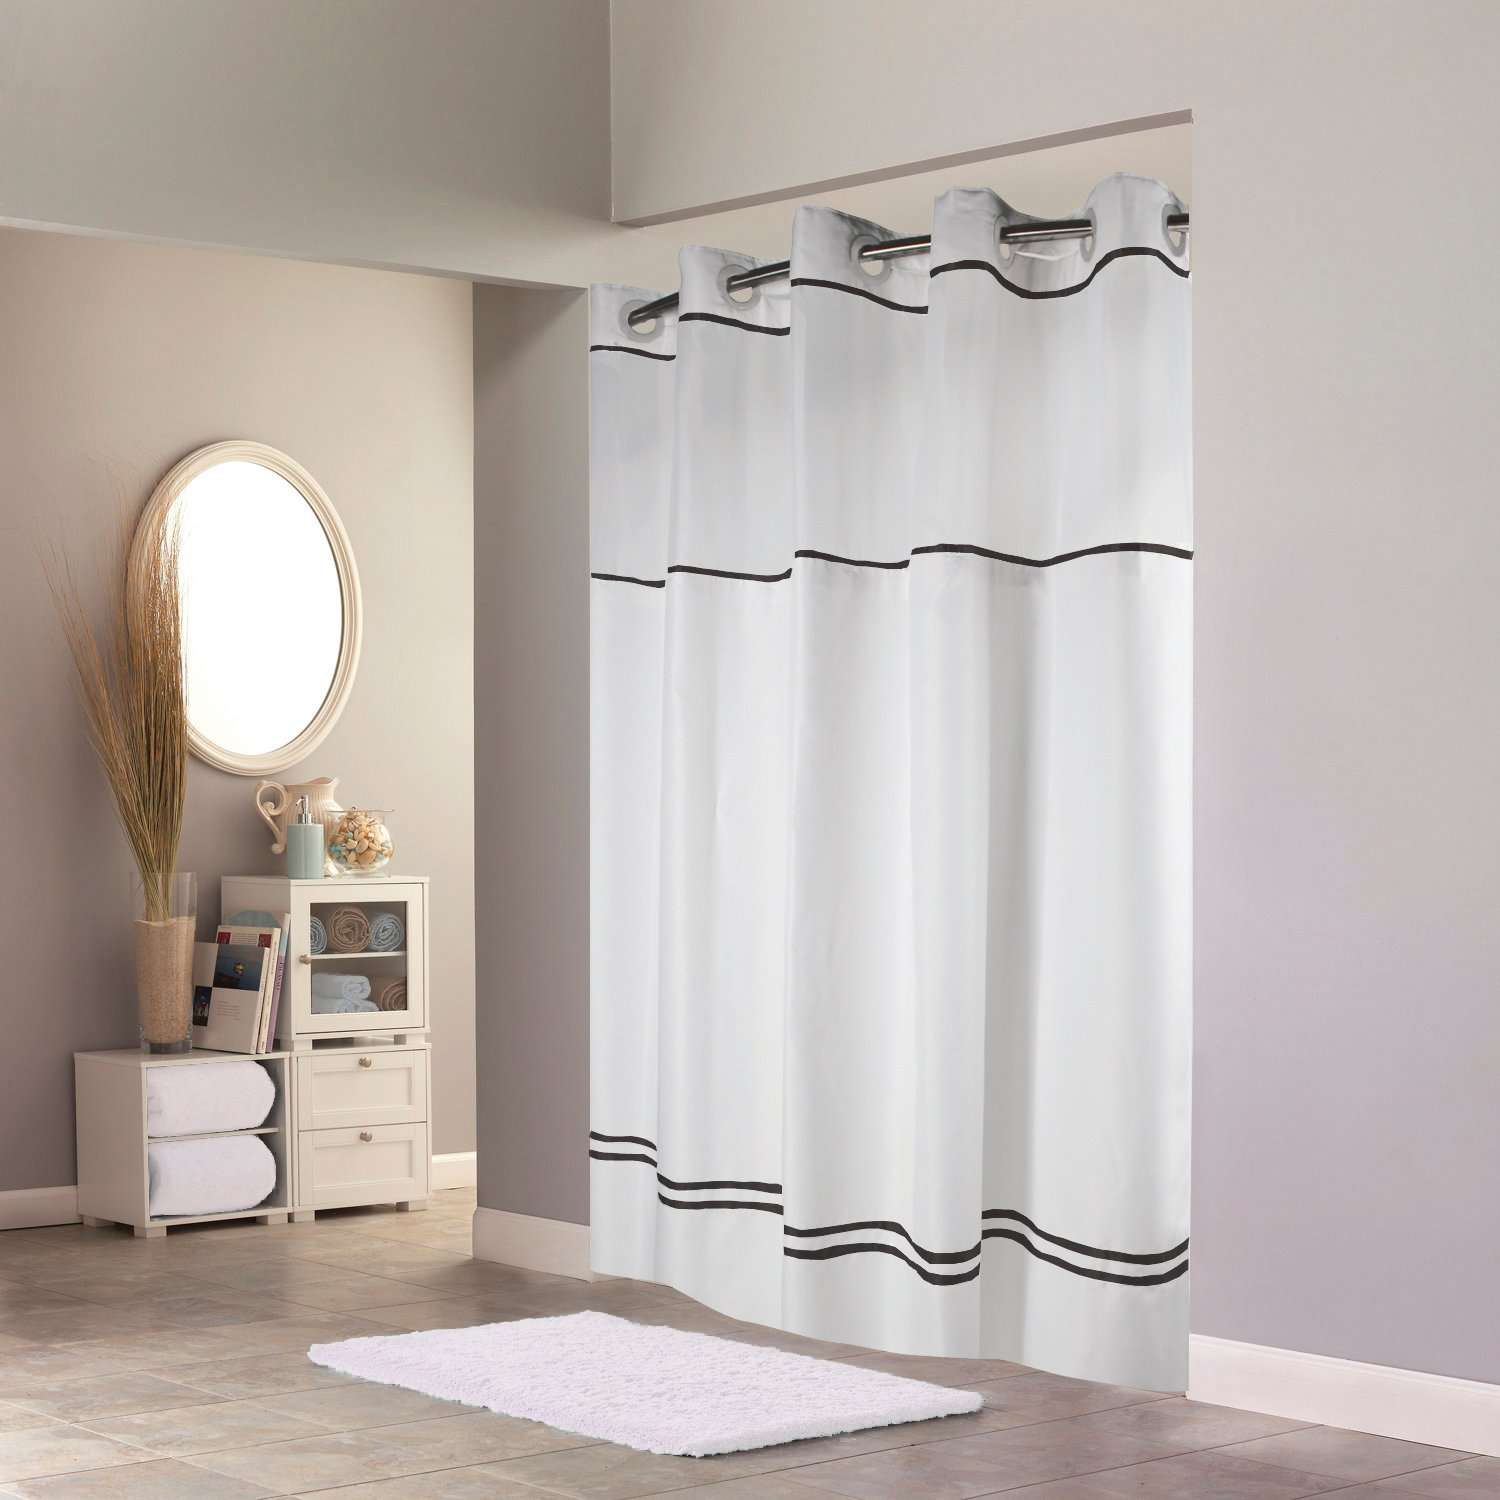 Hookless RBH40MY040 Monterey Shower Curtain with PEVA liner - White/Black by Hookless